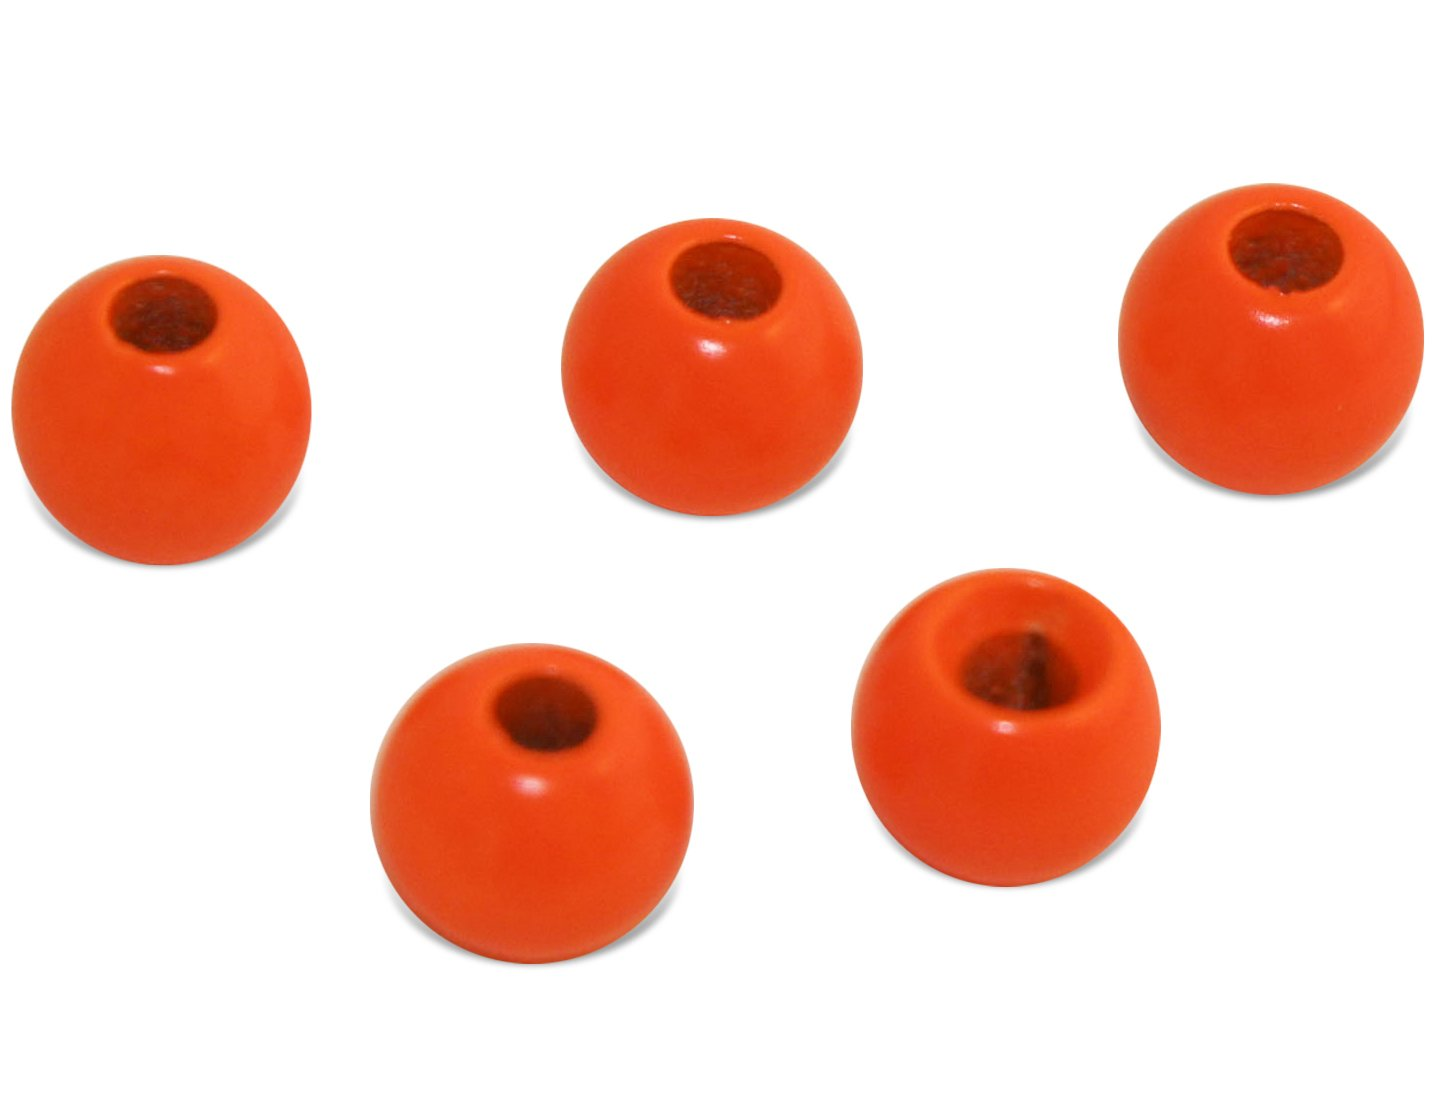 Prime Fish Co. Brass Fly Tying Bead Heads 100 Count (2.0mm, Fluor Red)